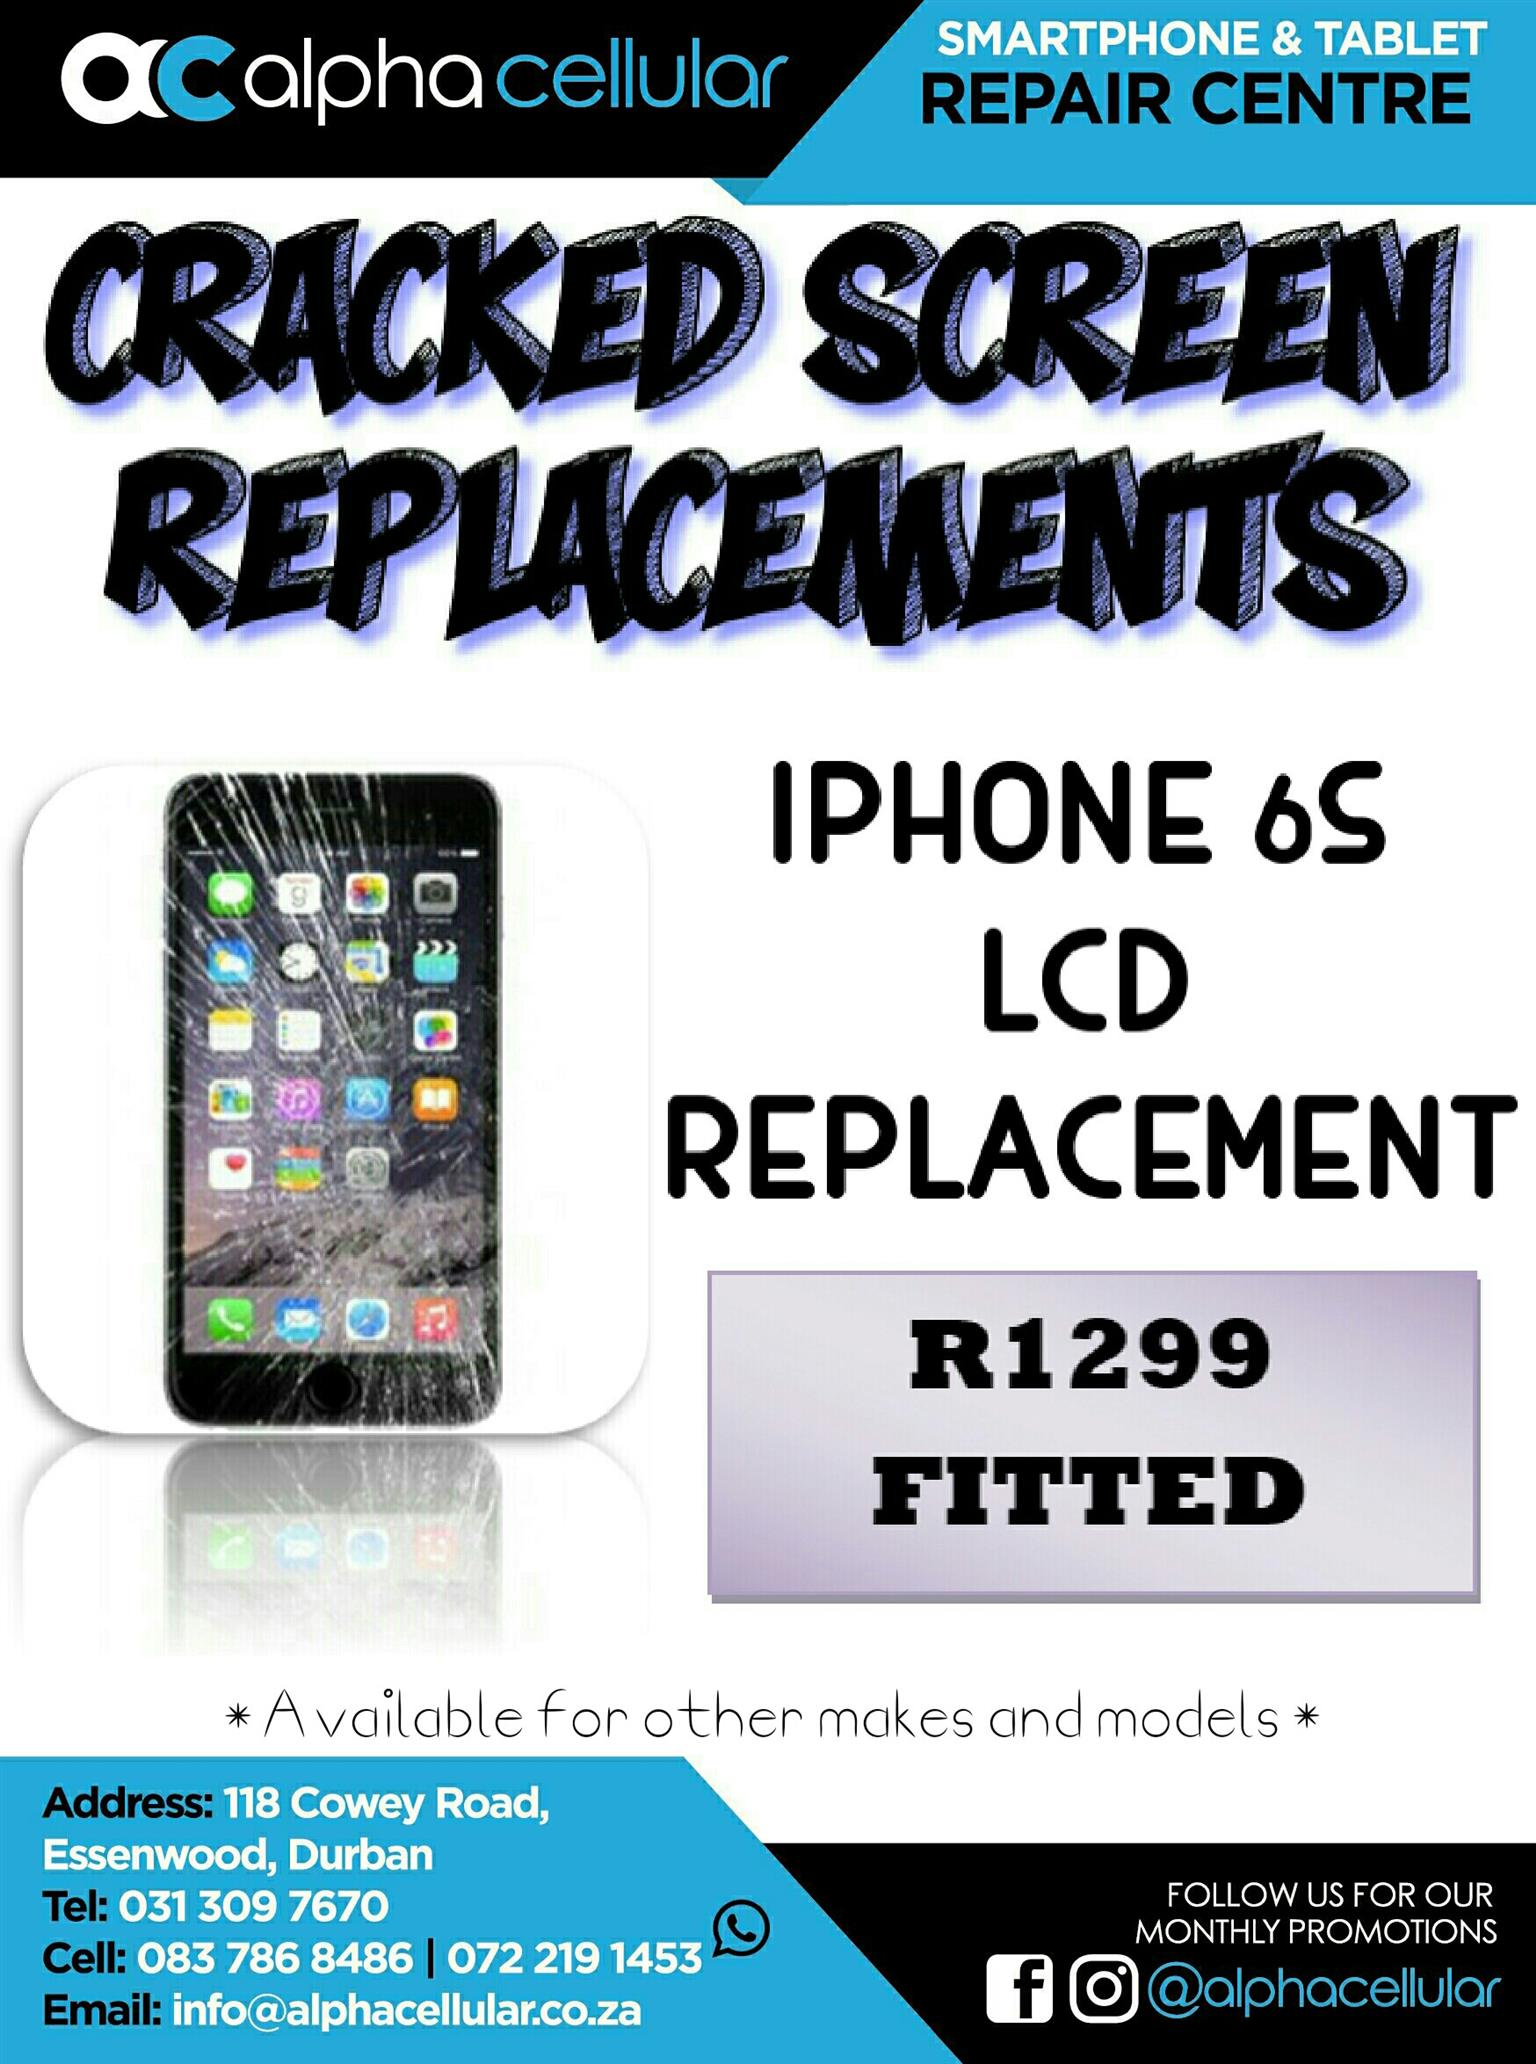 IPHONE 6s CRACKED SCREEN REPLACEMENTs - DURBAN